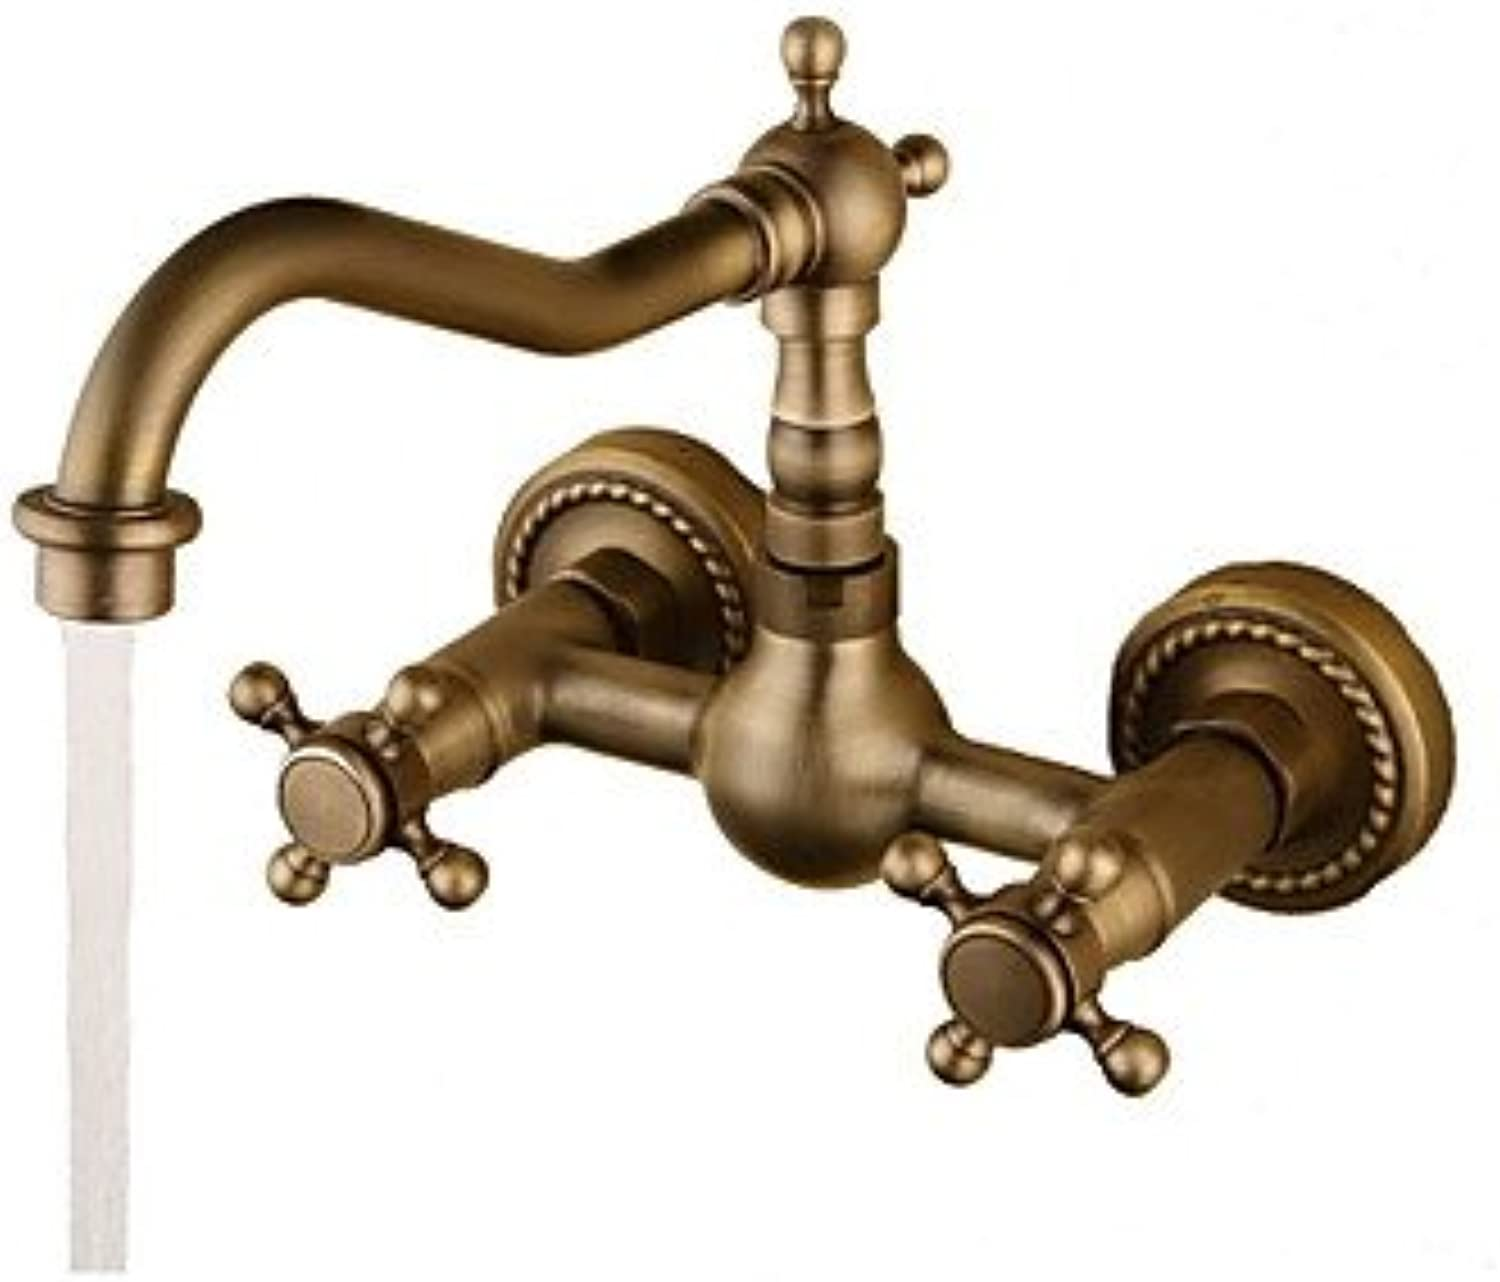 Mangeoo Bathroom Sink Faucet - redatable Antique Bronze Wall Mounted Two Holes Two Handles Two Holesbath Taps